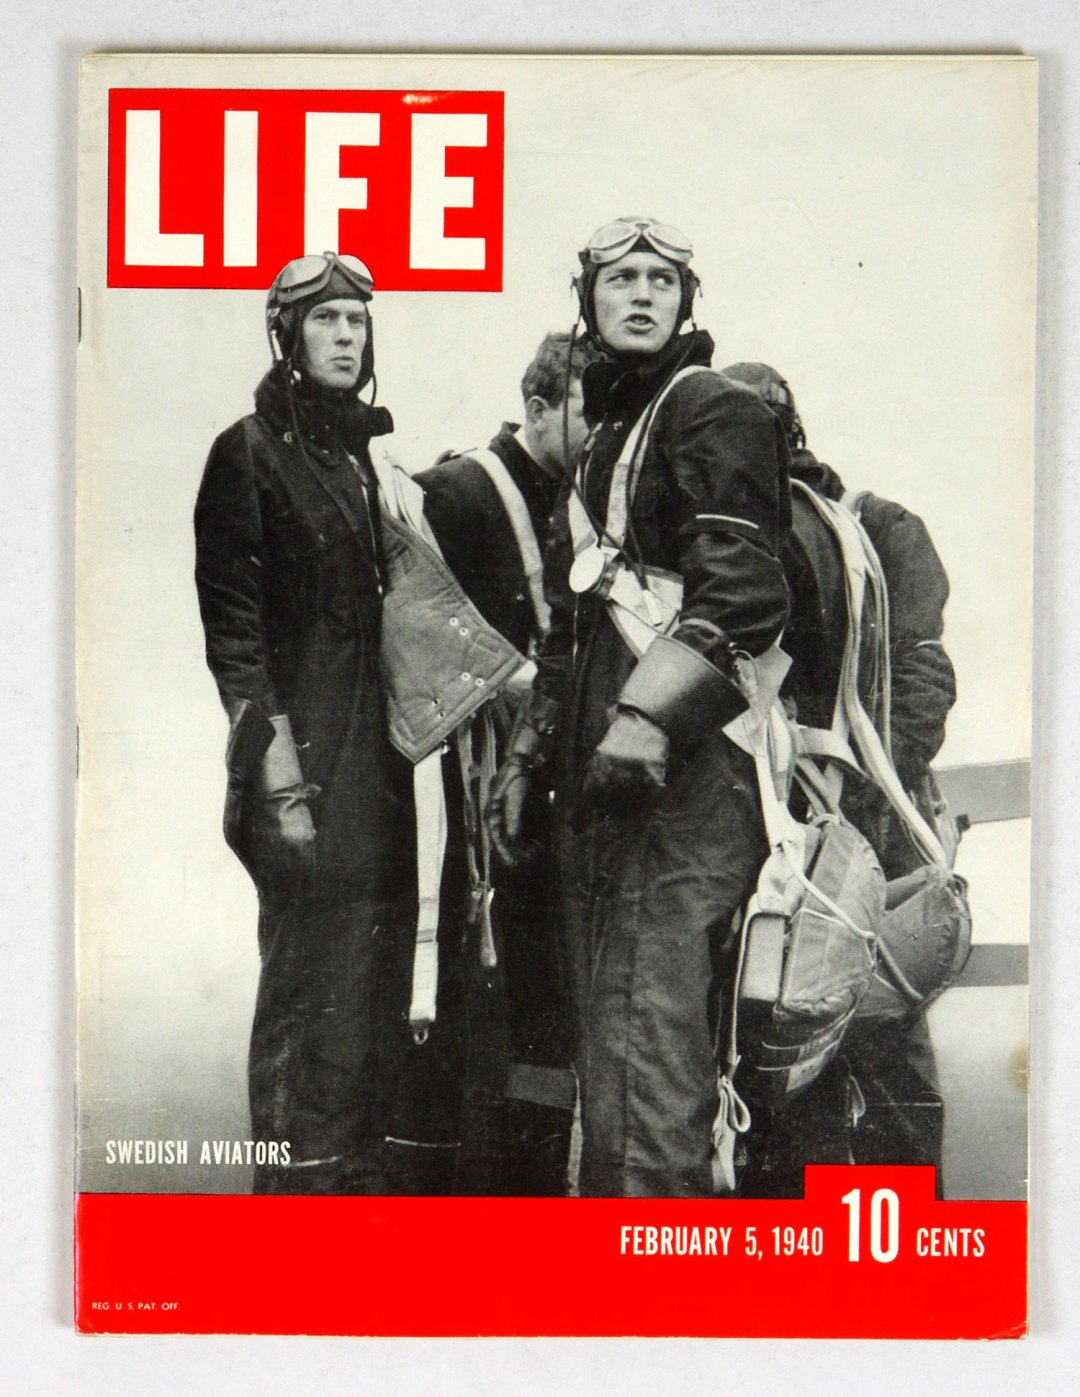 LIFE Magazine 1940 February 5 Swedish Aviators